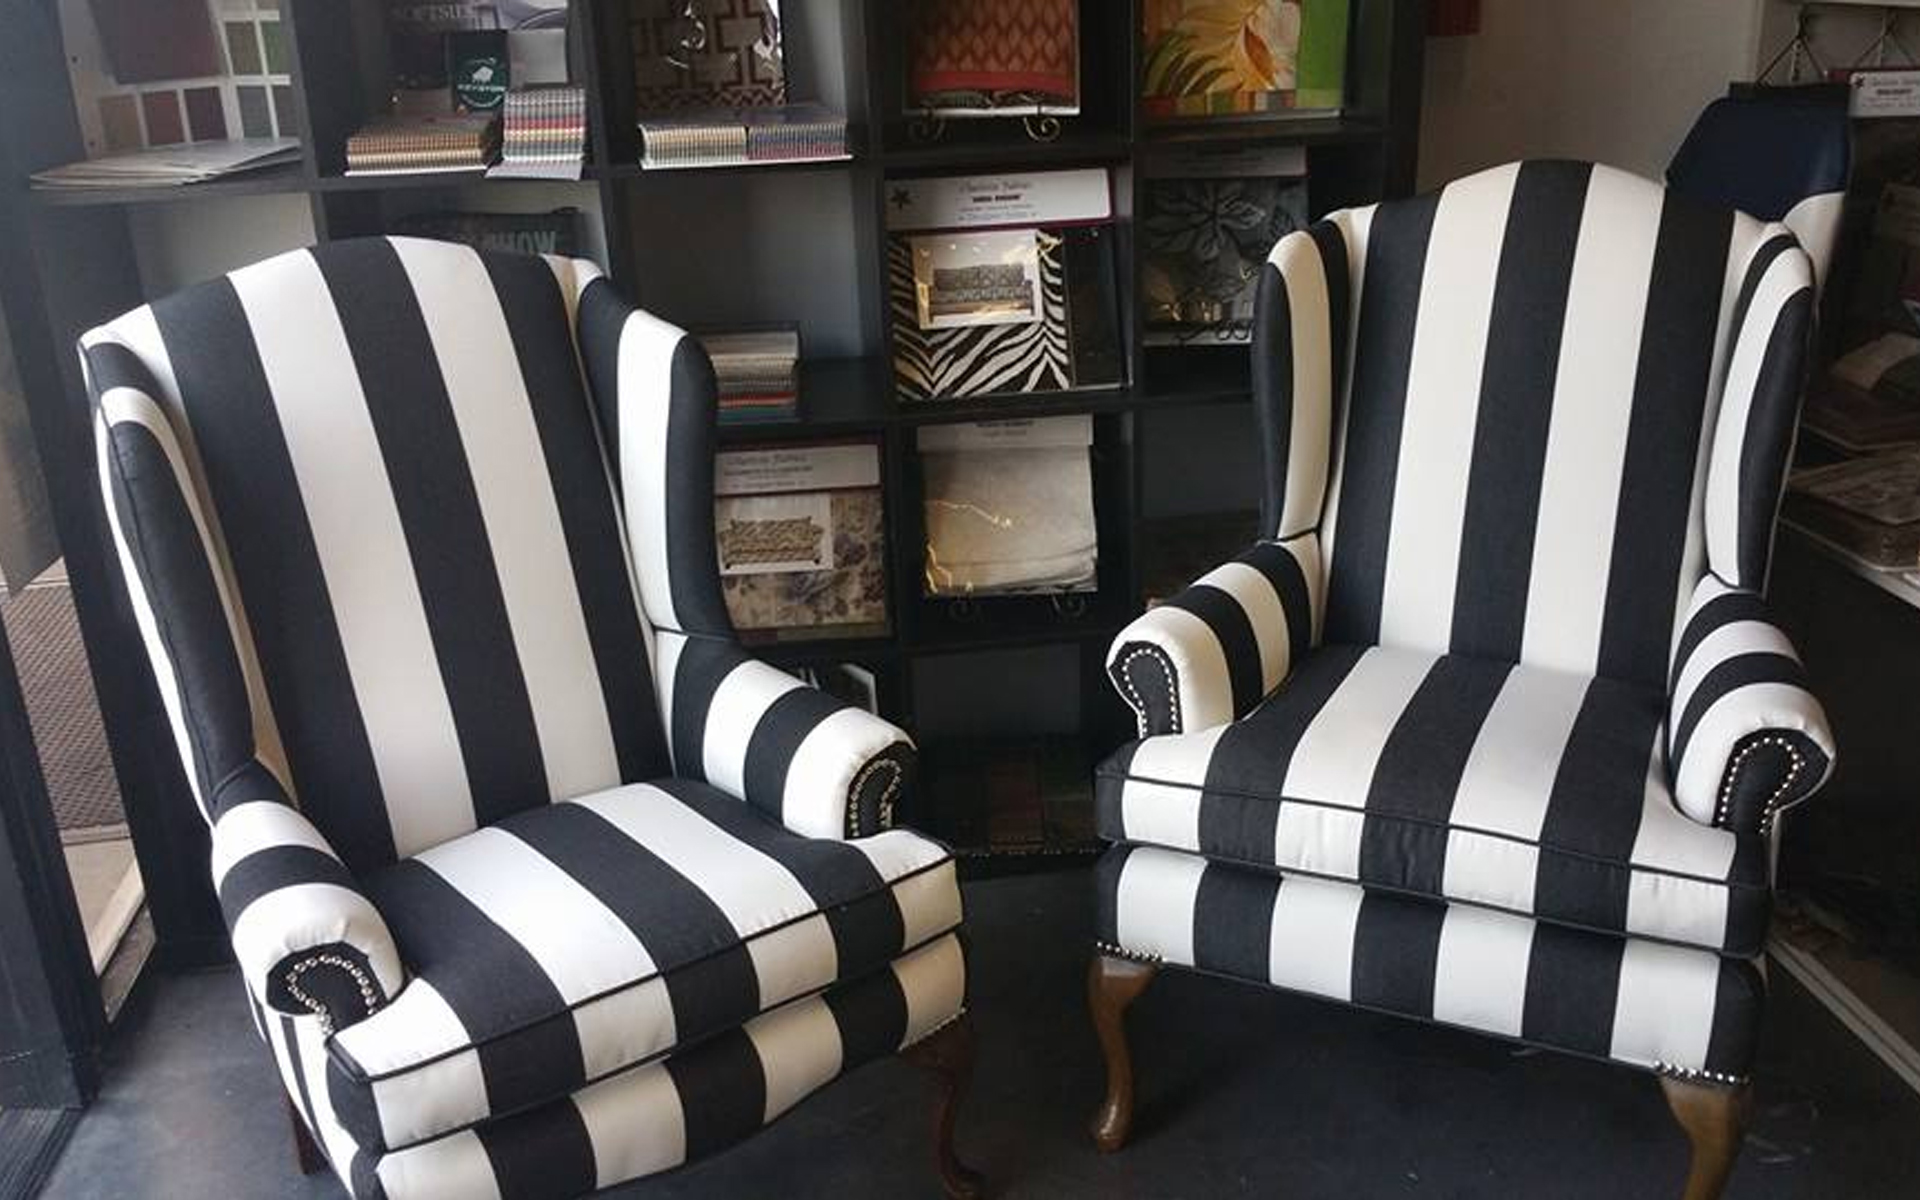 San Diego Furniture Upholstery. Classic Furniture Upholstery